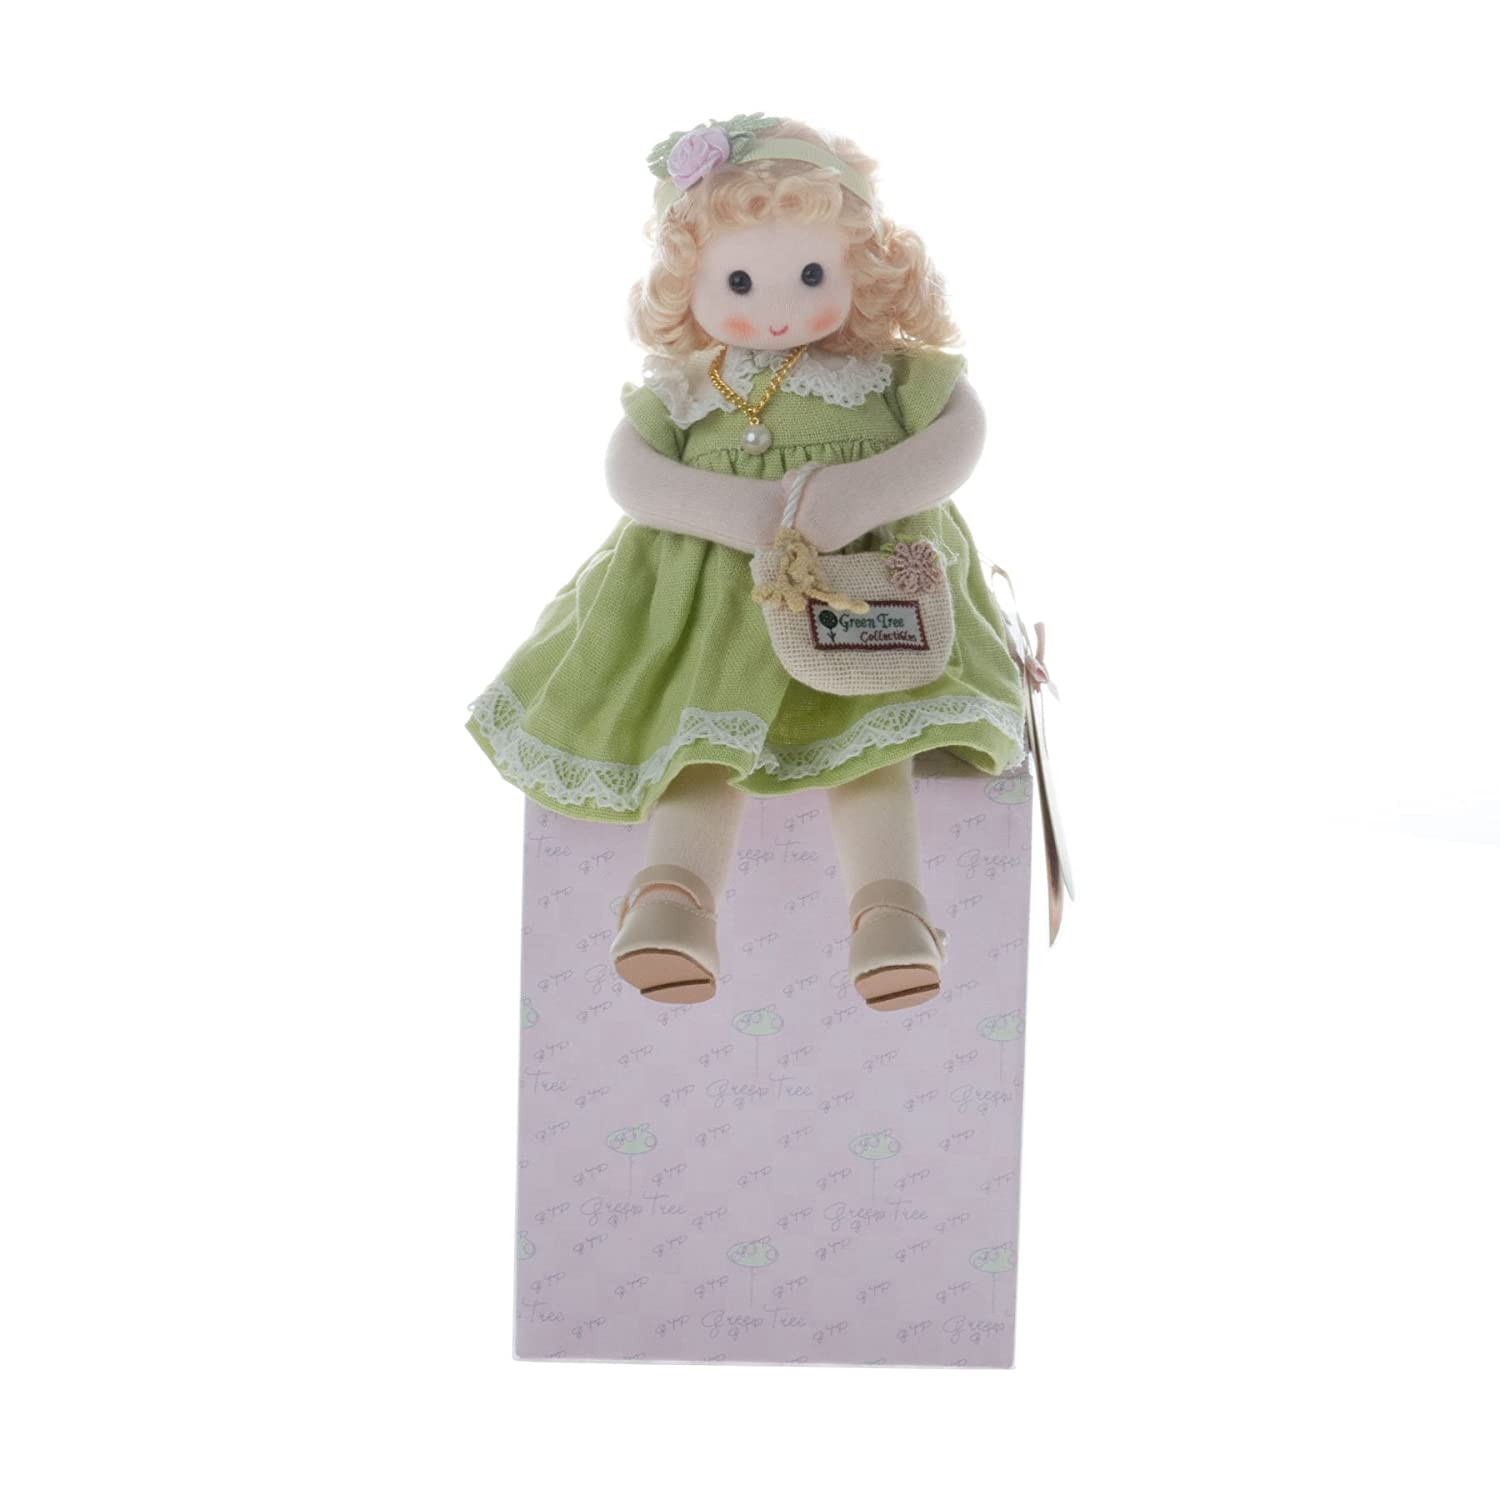 April - Diamond Musical Doll GreenTree 980-54